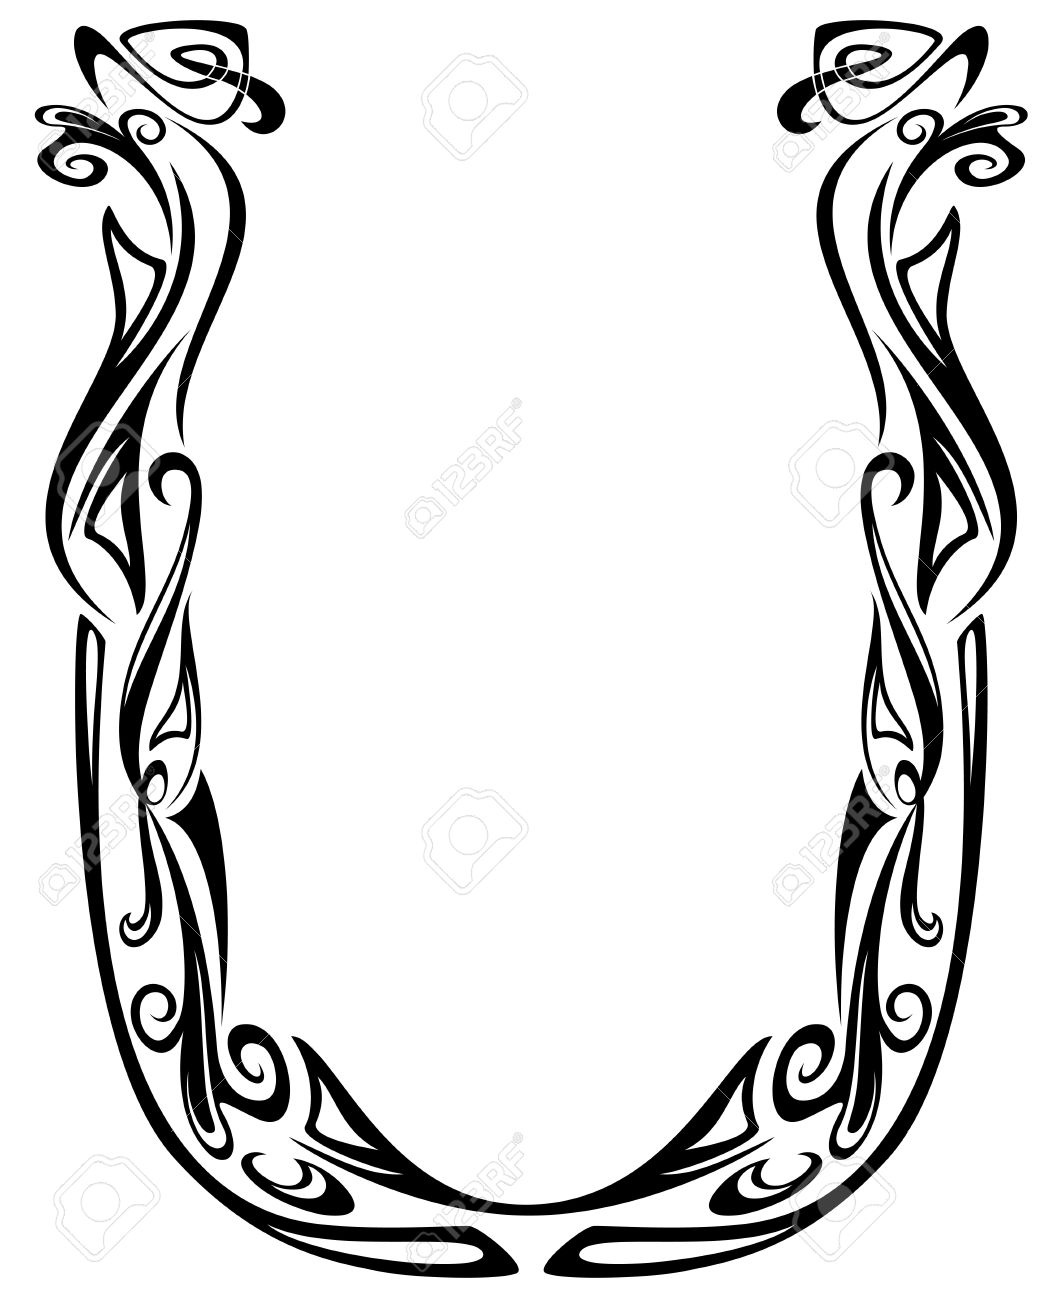 Art Nouveau floral style font - letter U - black and white fine vector outline - abstract floral design elements Stock Vector - 12167491